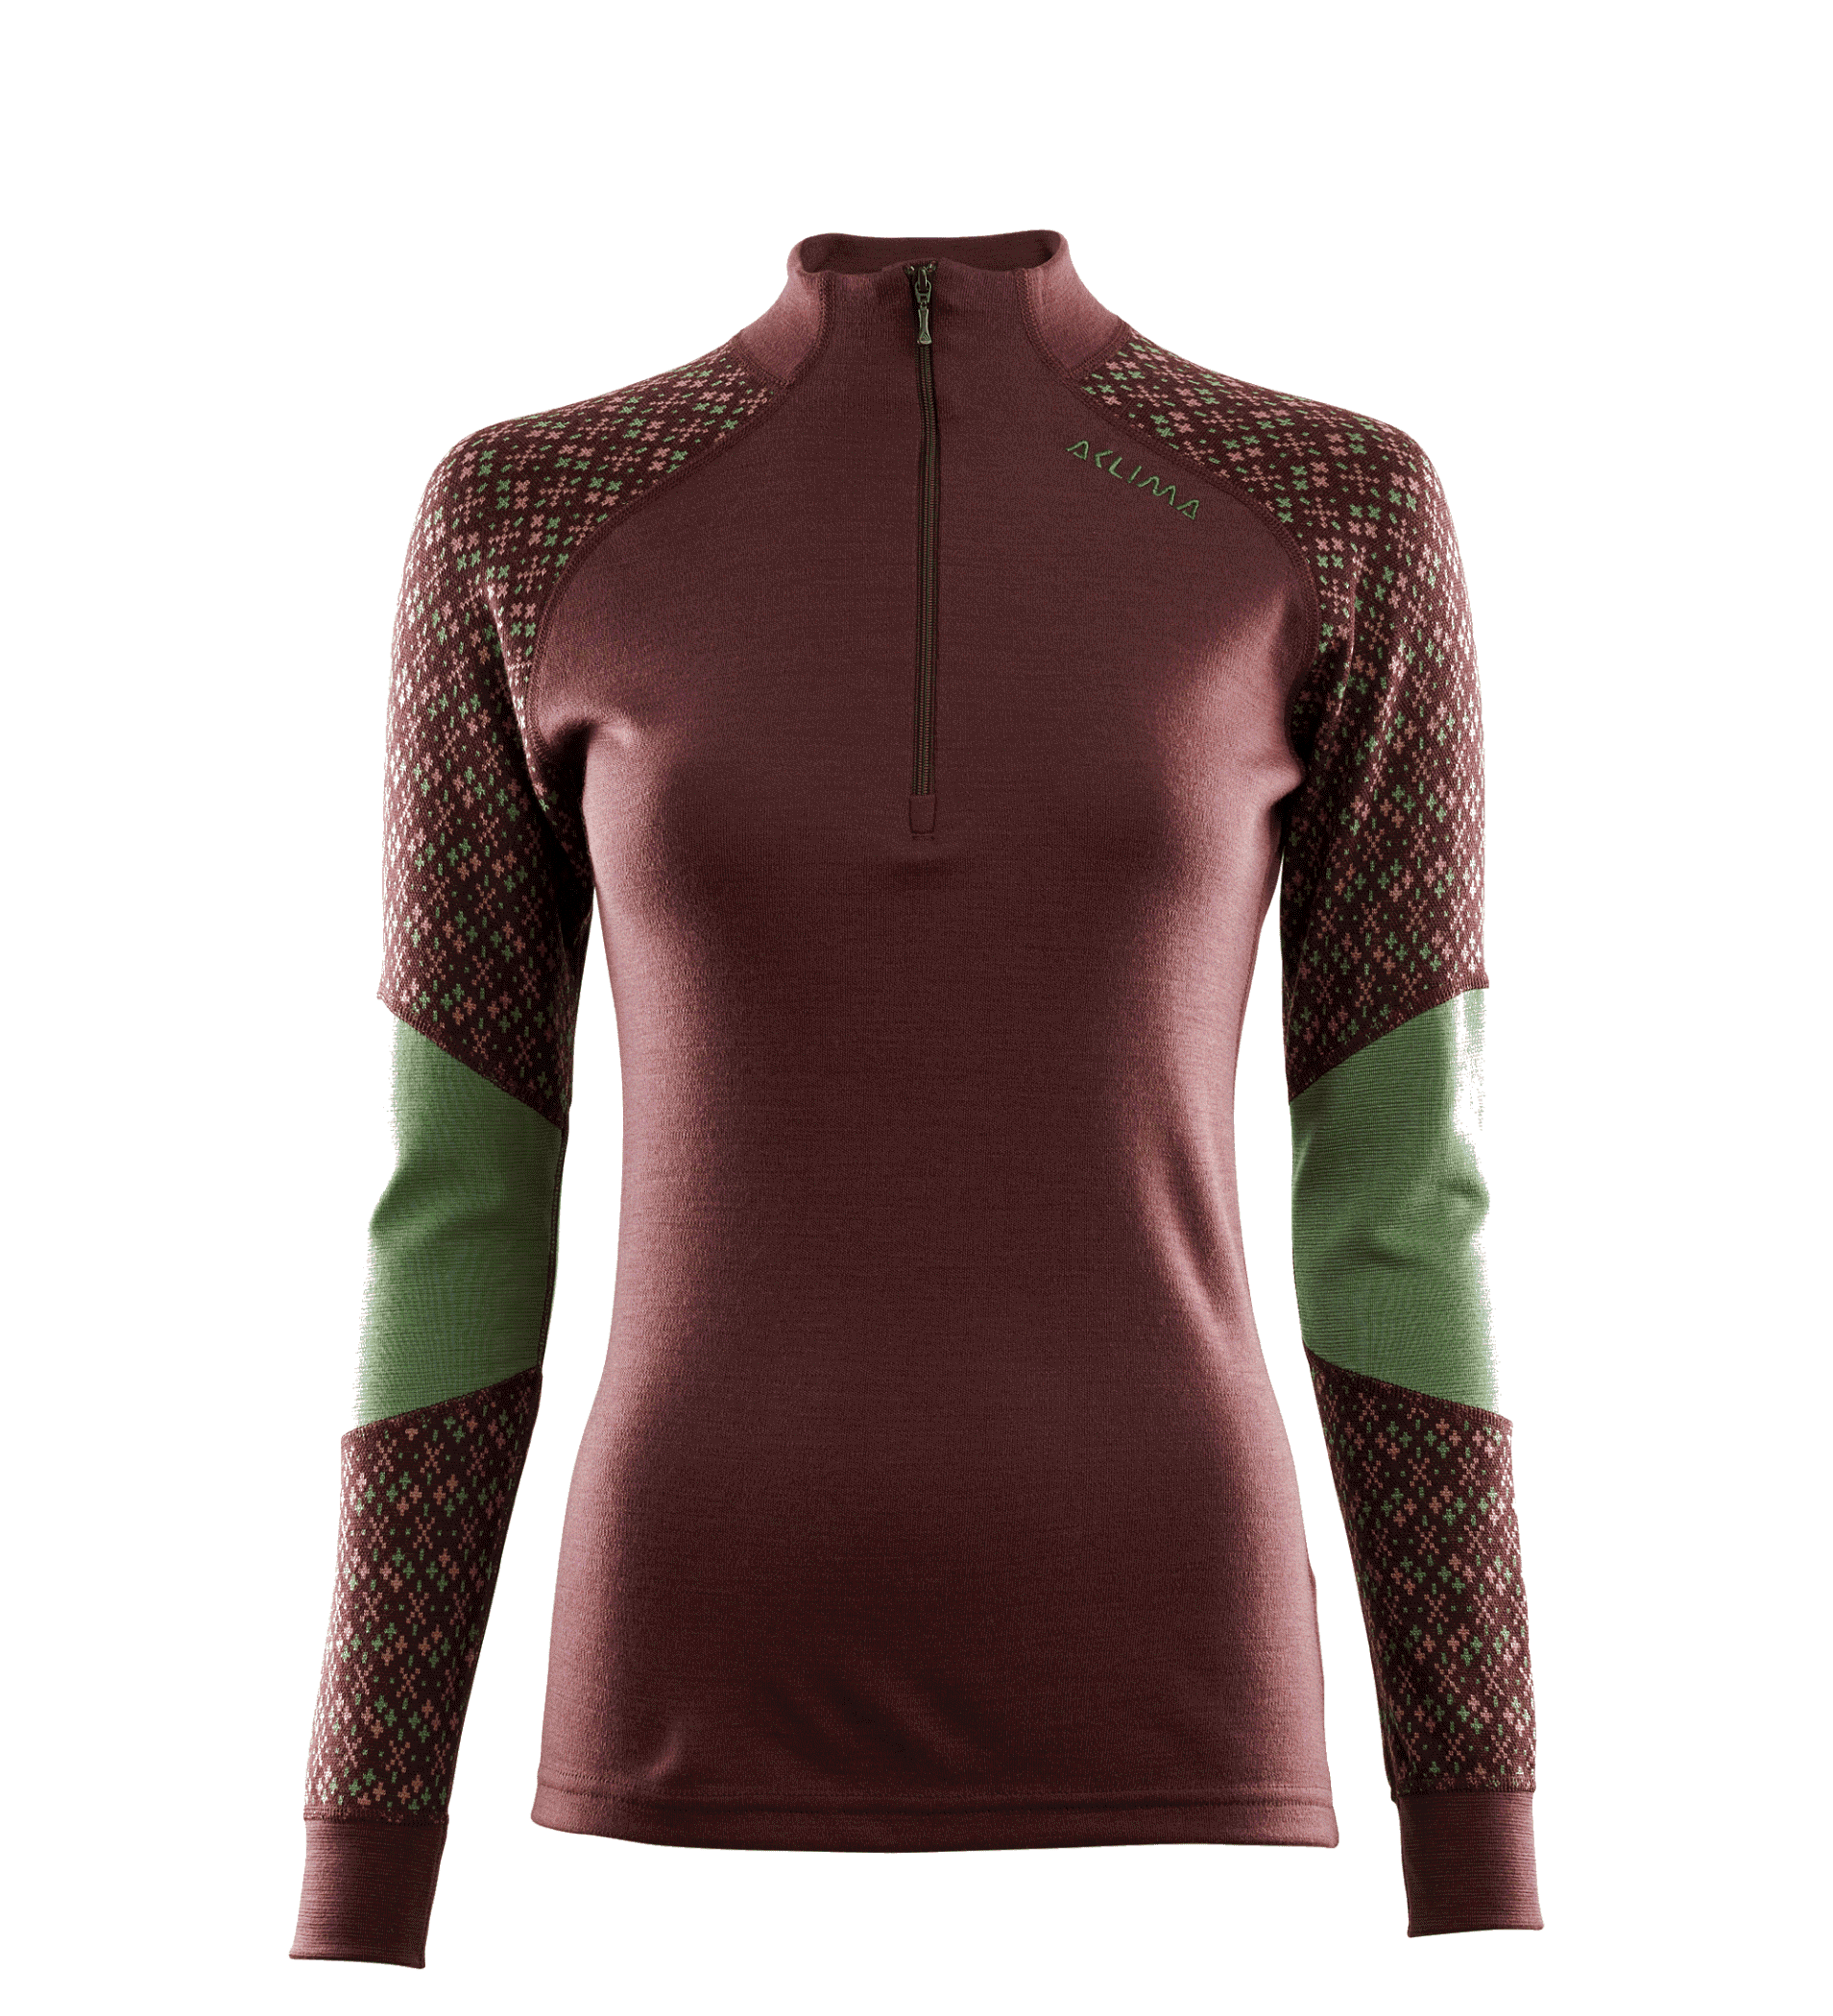 Long-sleeved t-shirt, Jersey, Maroon, Outerwear, Shoulder, Neck, Green, Sleeve, Clothing